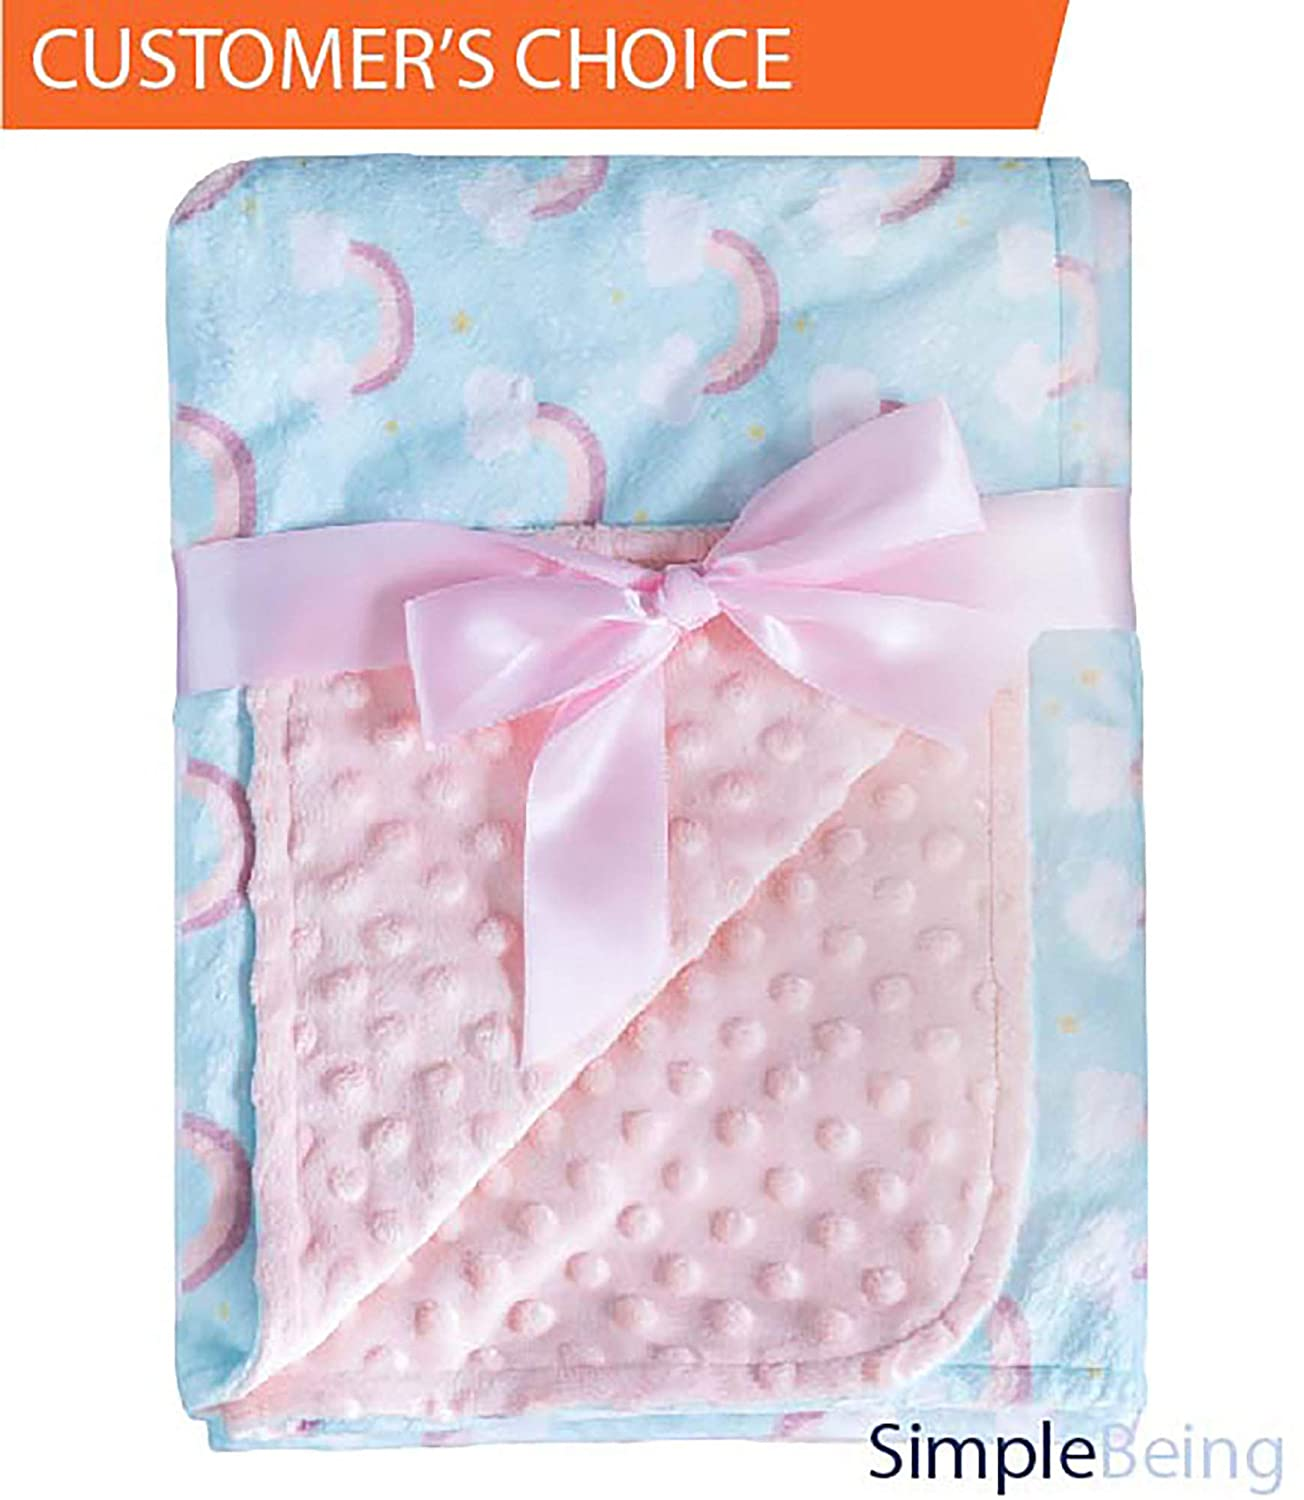 Simple Being Soft Minky Baby Blanket, Textured Dot and Printed Mat, Double Sided Girls Blanket (Rainbow), Shower Gift Registry